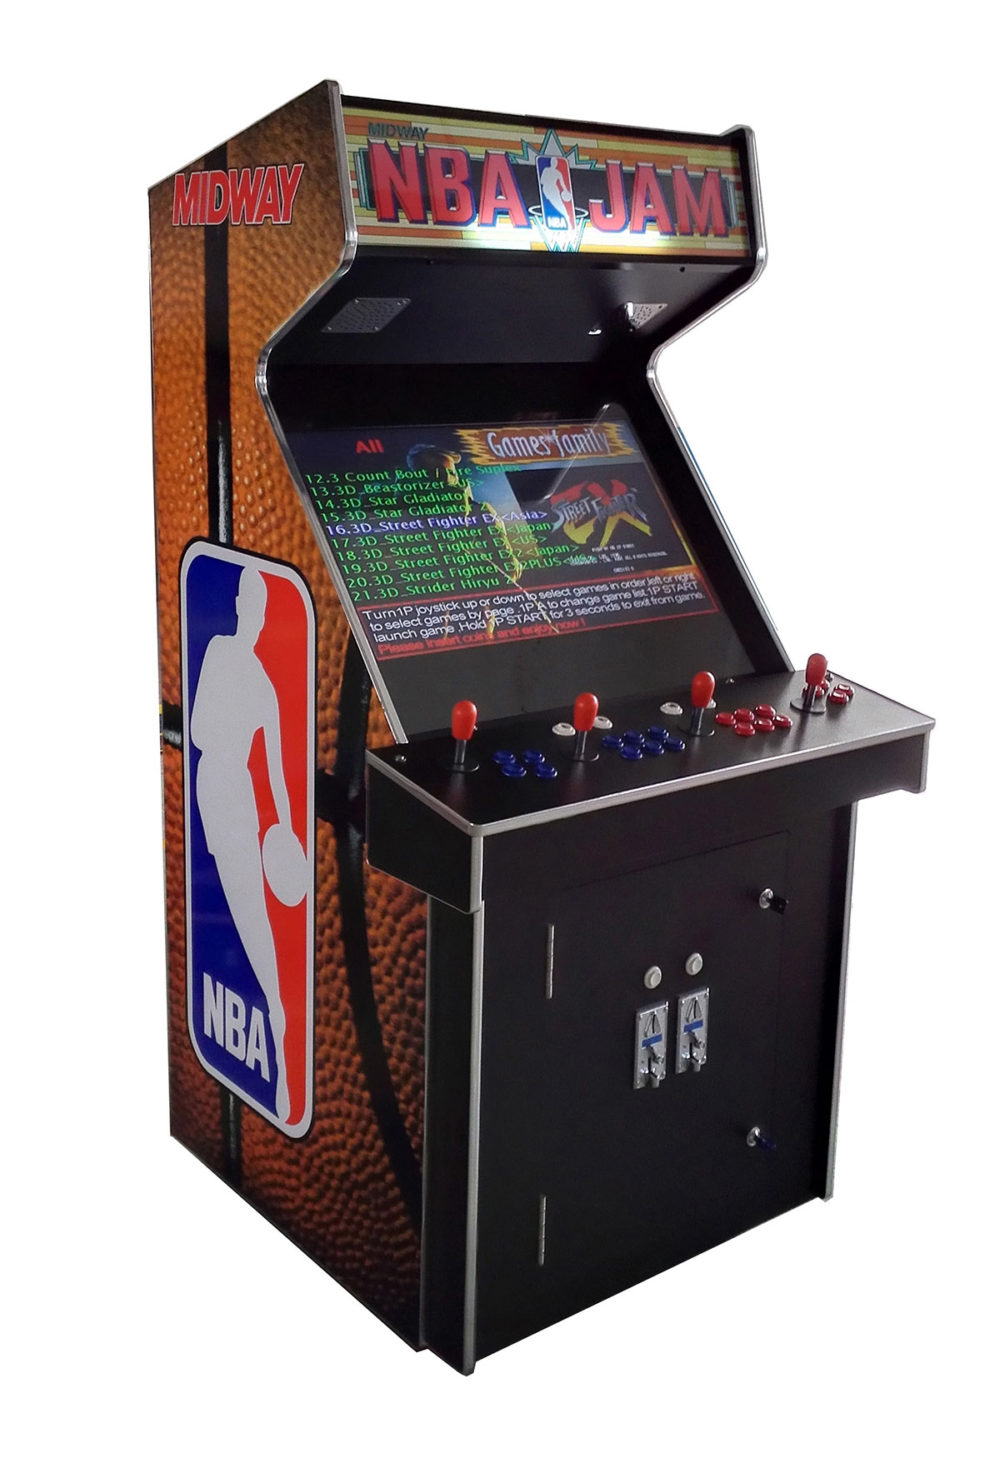 arcade rewind 3500 in 1 upright arcade machine with nba jam. Black Bedroom Furniture Sets. Home Design Ideas